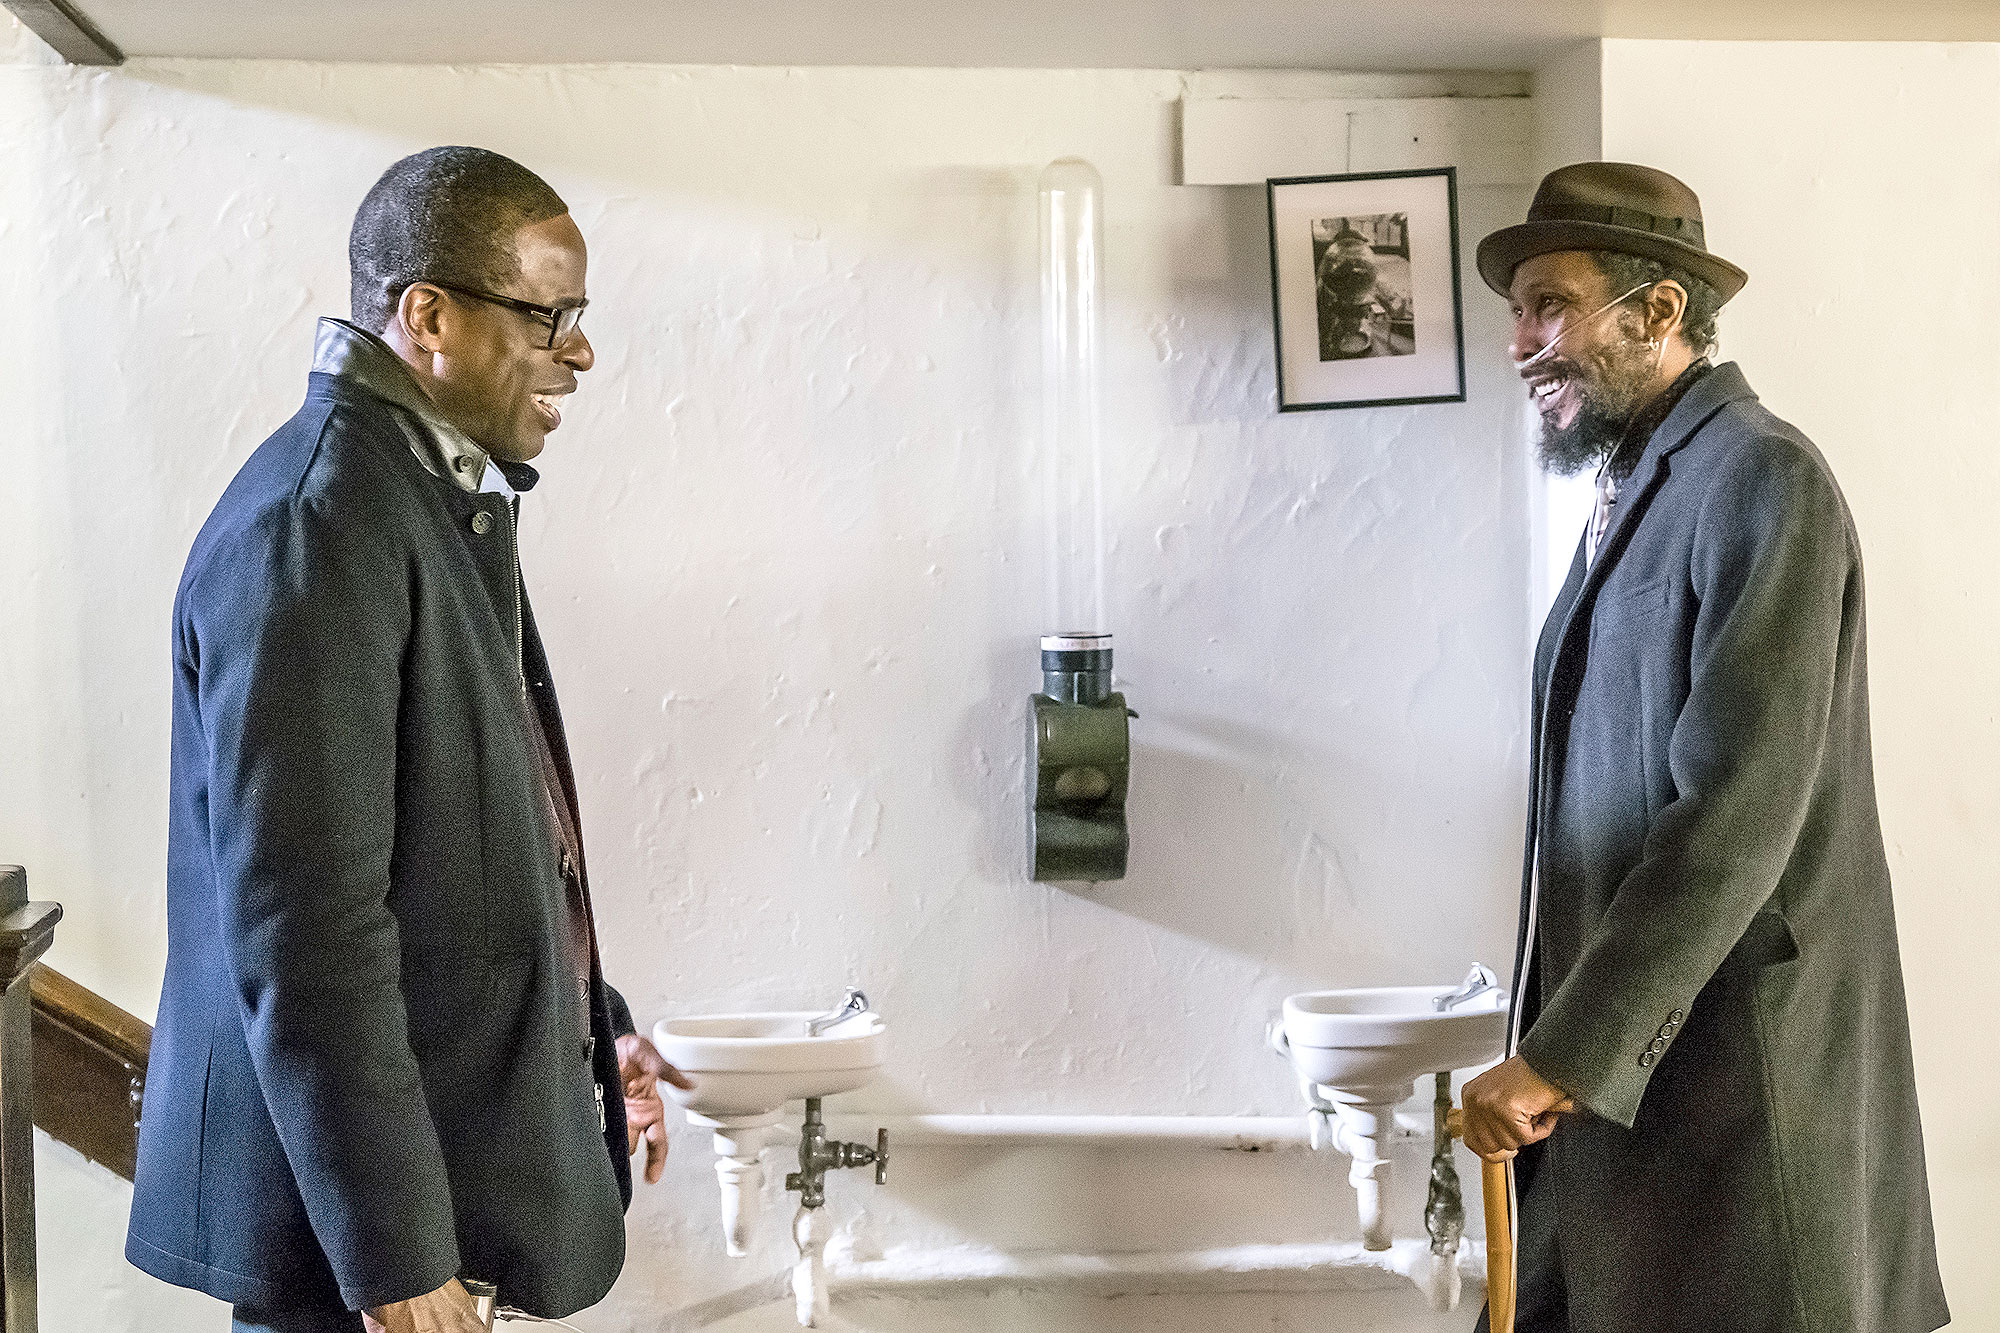 Sterling K. Brown as Randall, Ron Cephas Jones as William